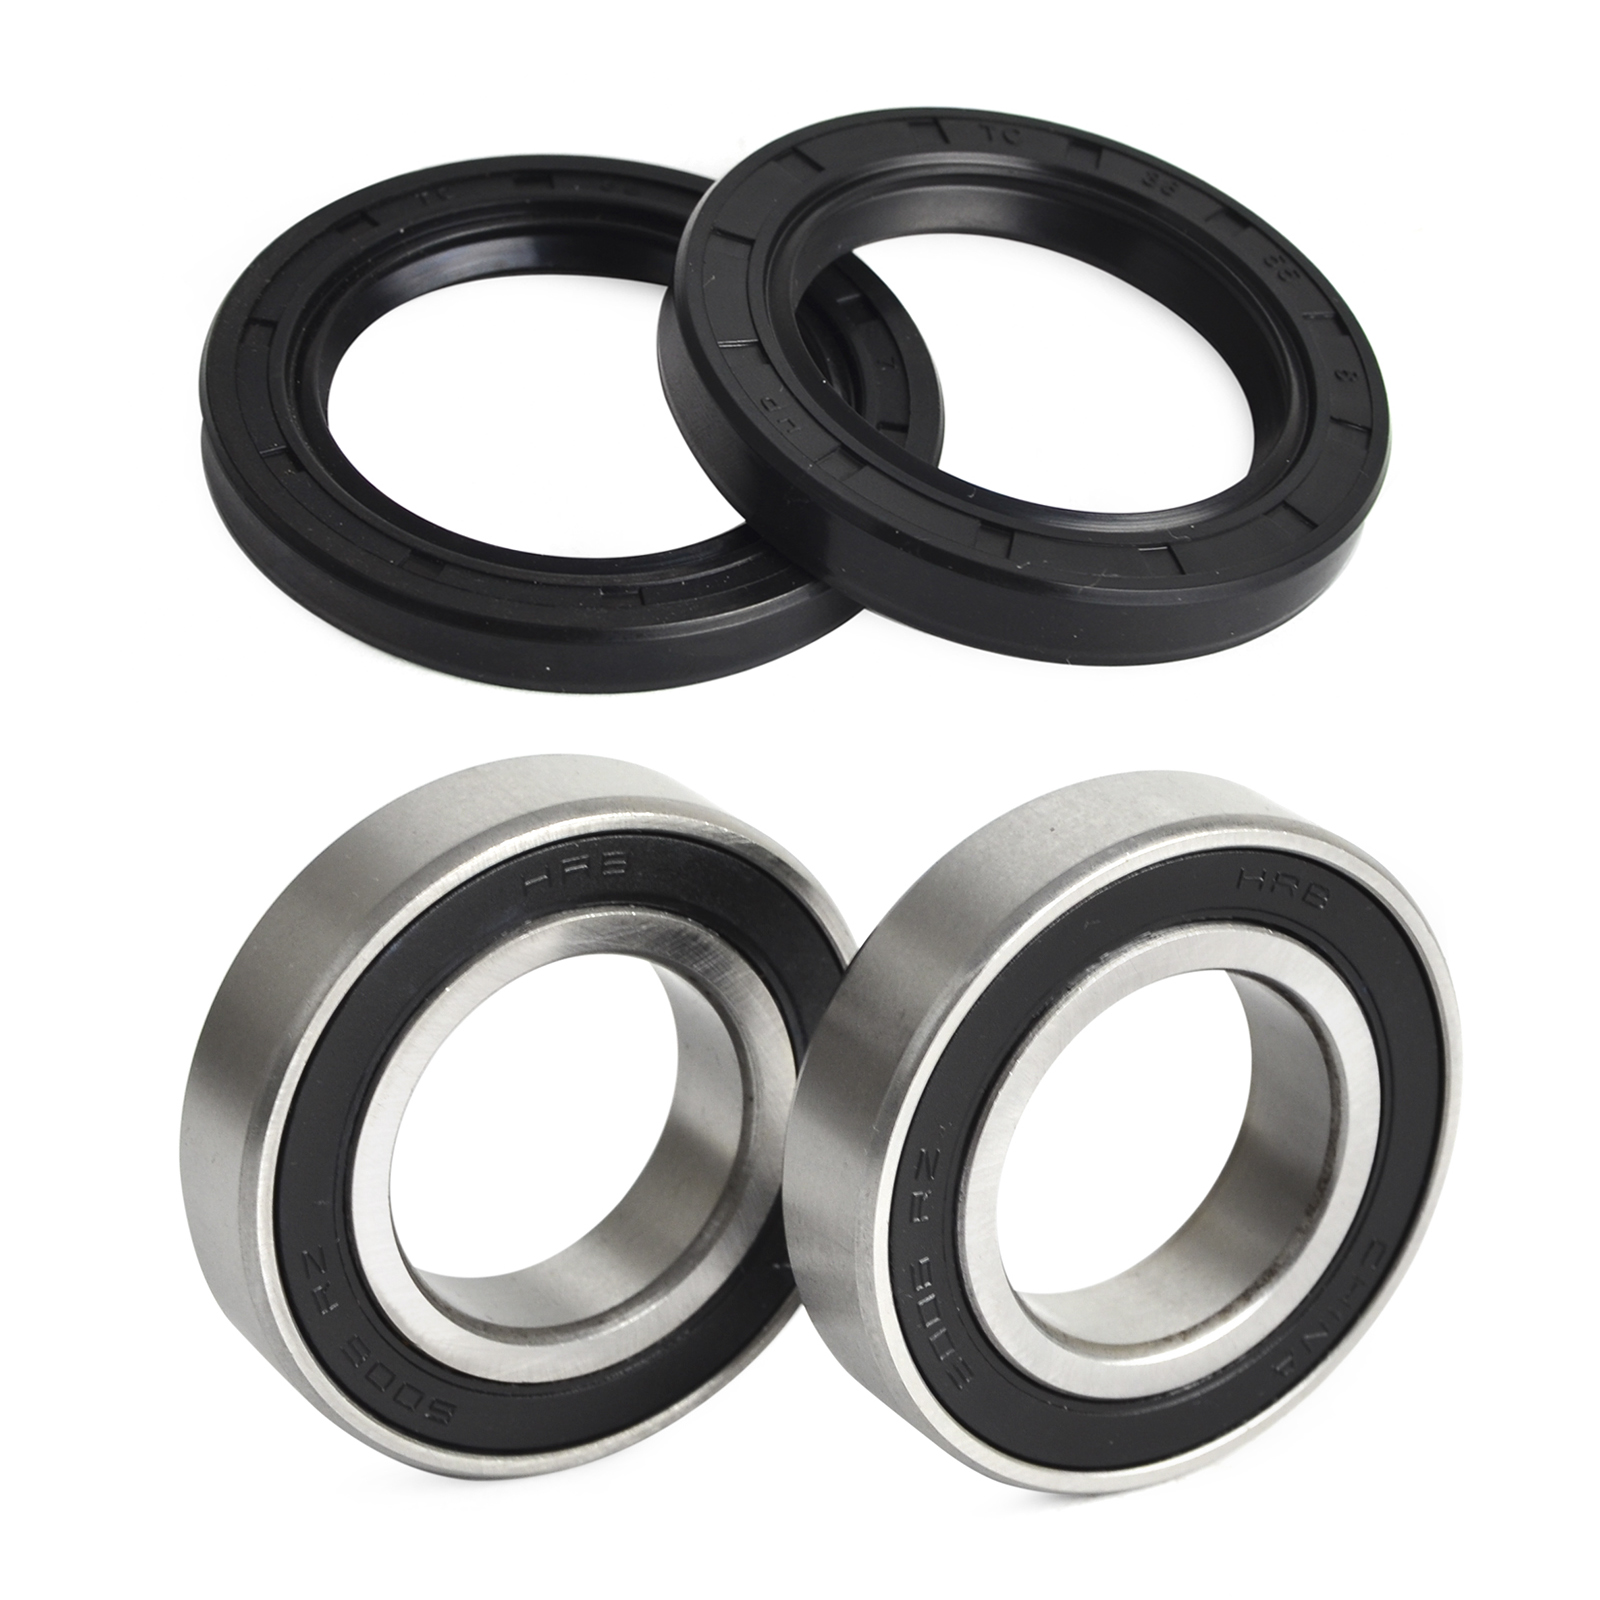 H2CNC Front Wheel Bearing Seats & Oil Seal Kit For <font><b>UTV</b></font> <font><b>800</b></font> 700 500 400 <font><b>Hisun</b></font> Massimo Supermach Bennche image